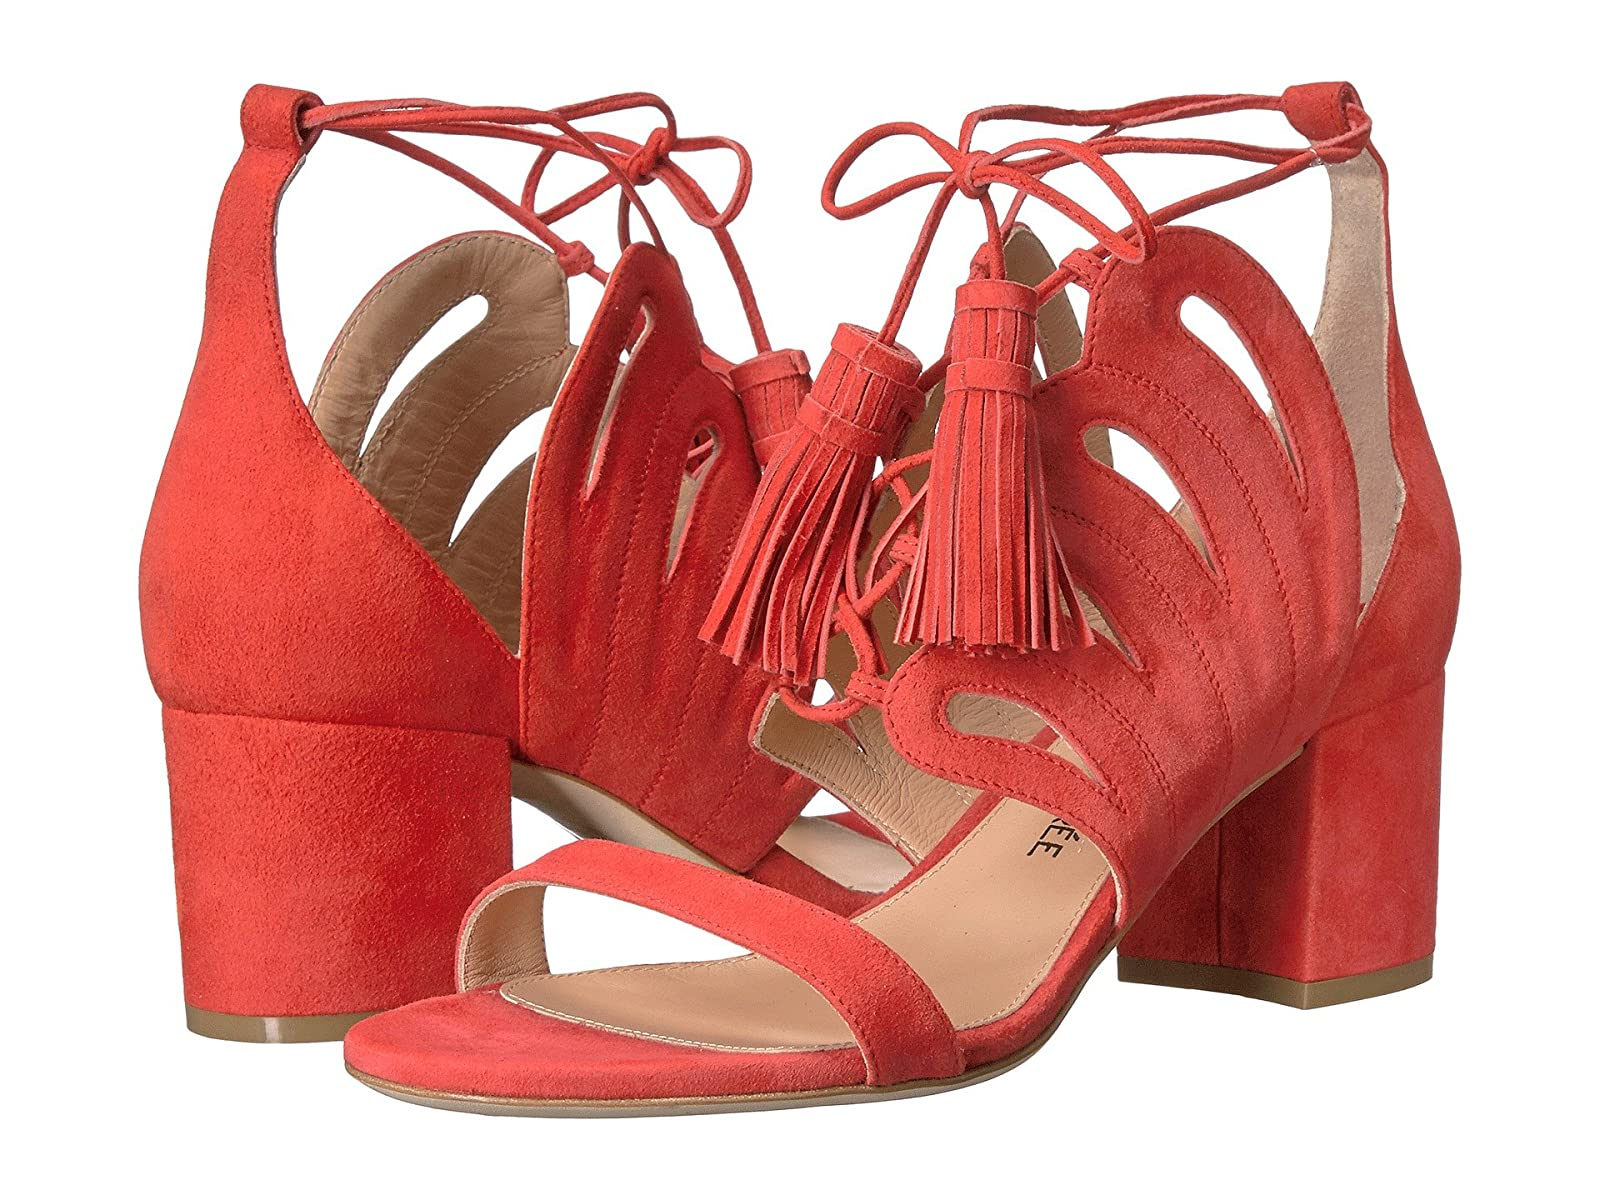 Racine Carrée SelmaCheap and distinctive eye-catching shoes